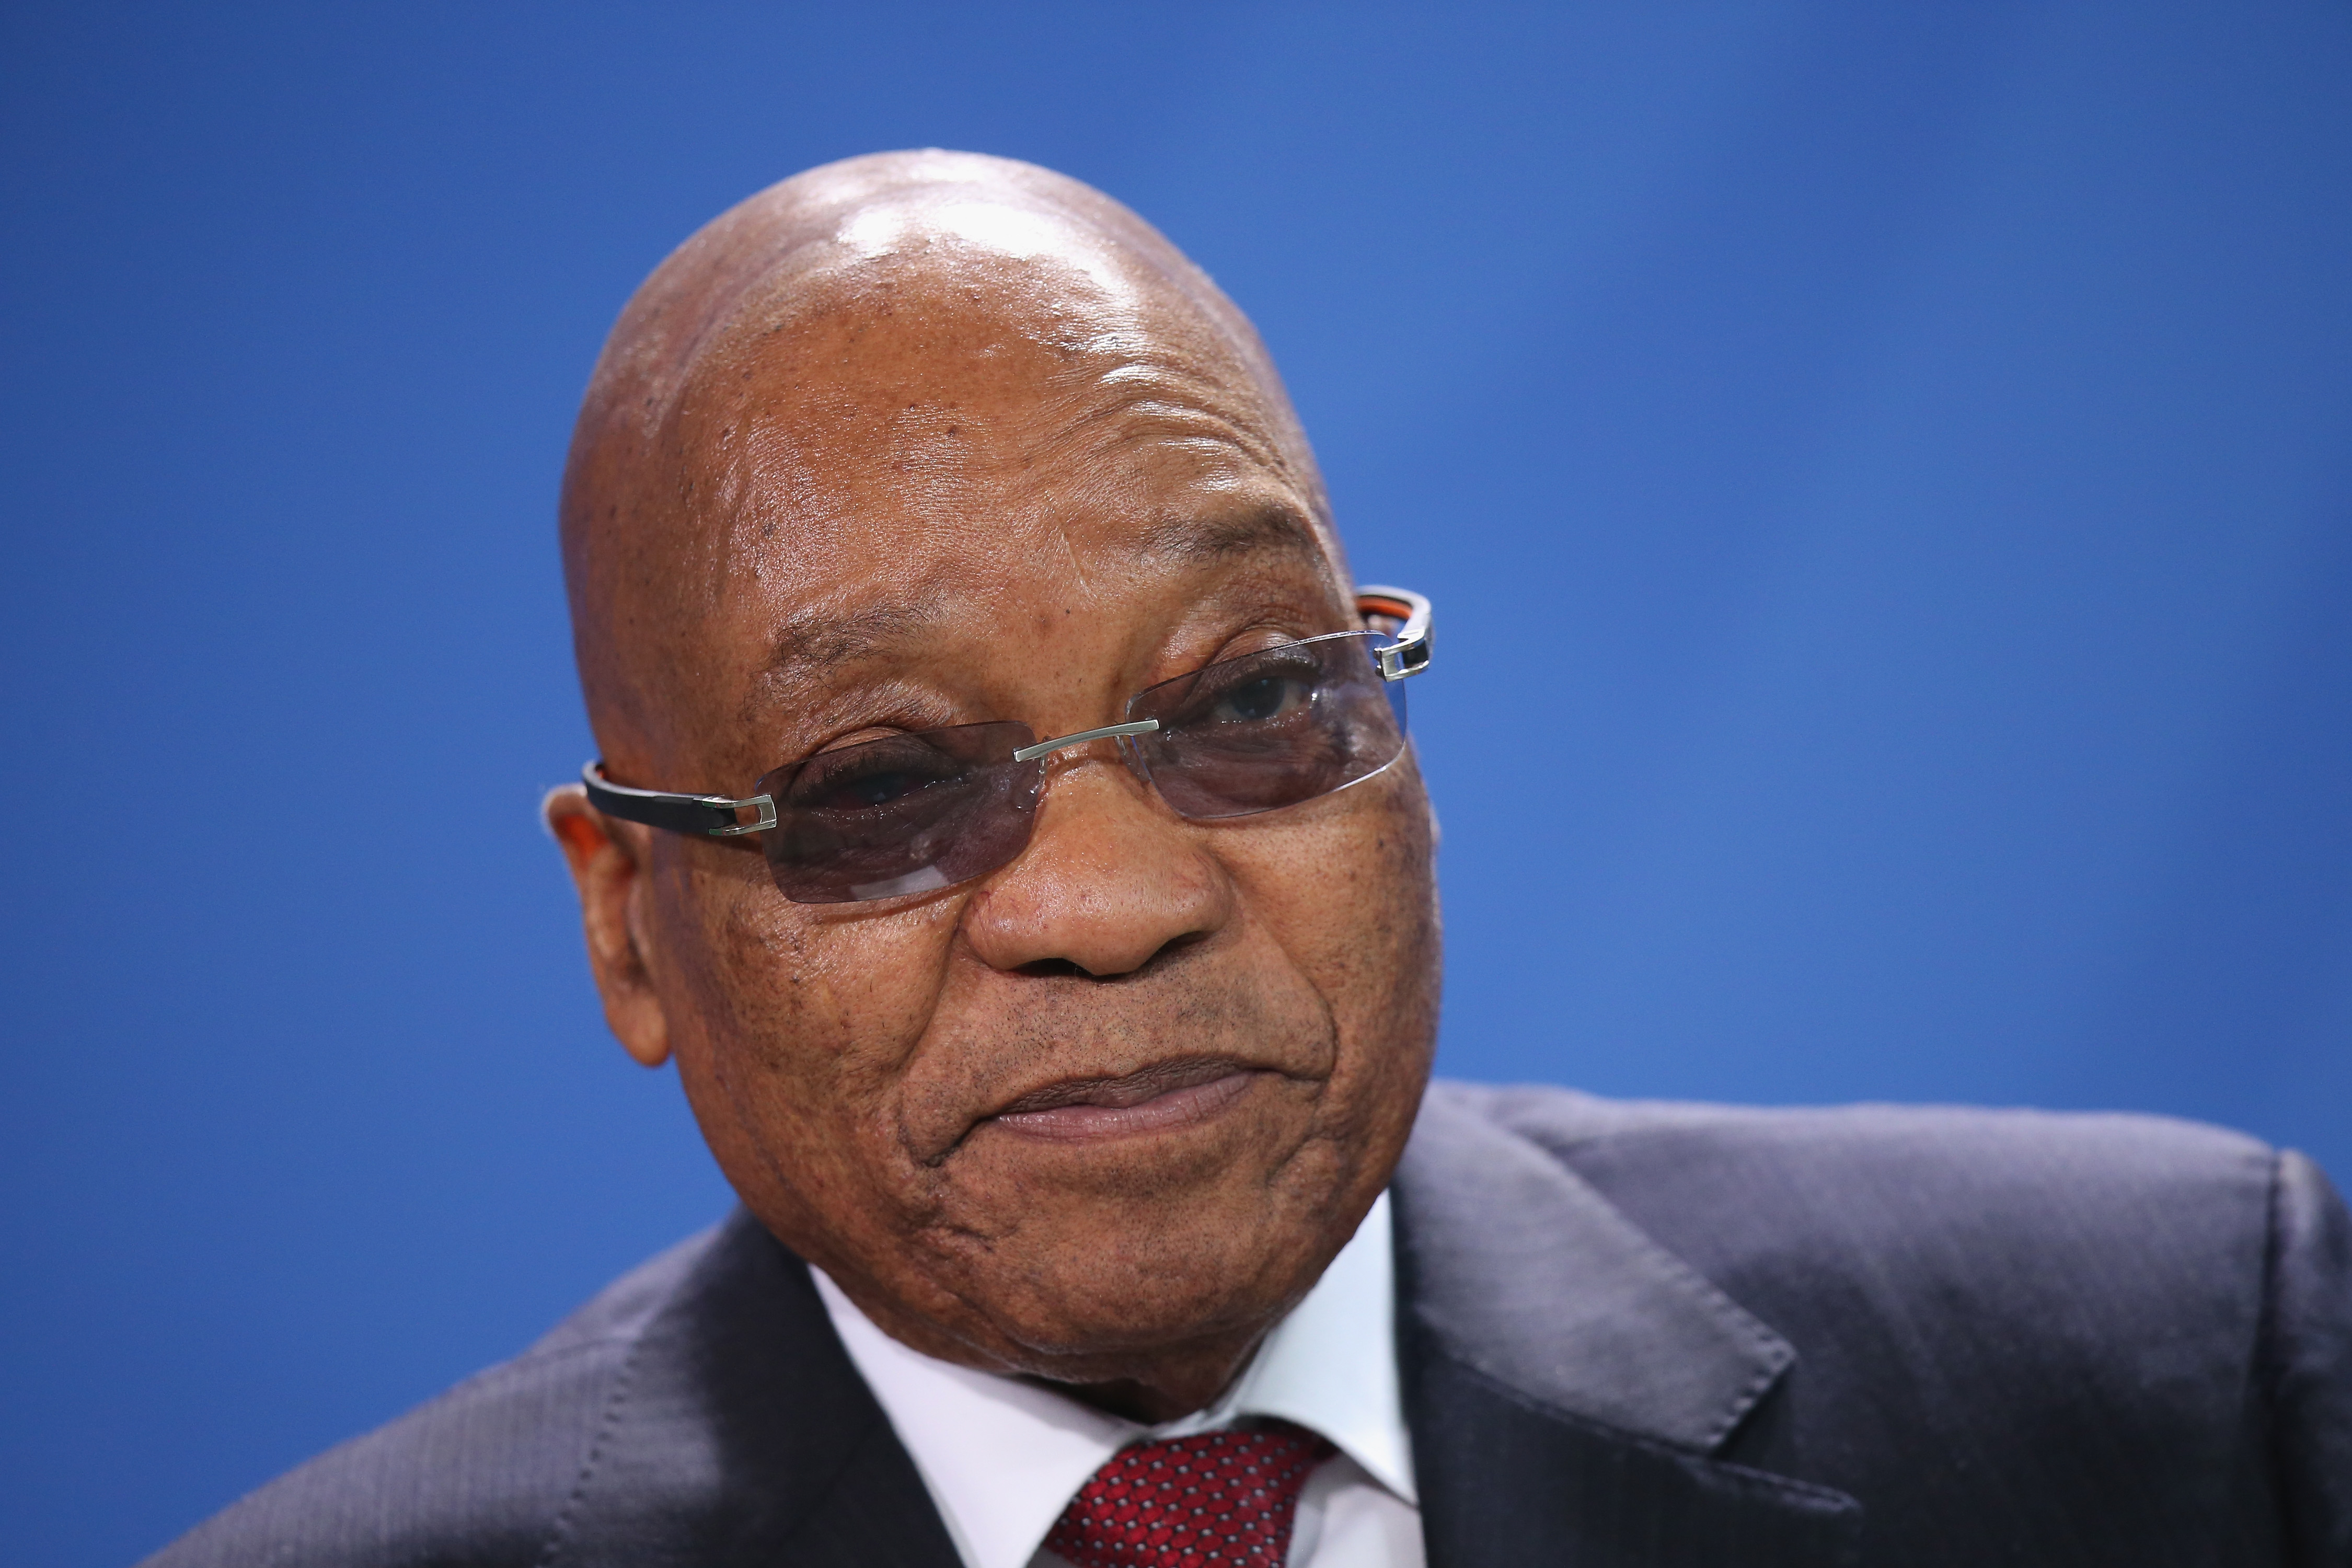 South African President Zuma To Visit Iran With Eyes On Tehran's Oil